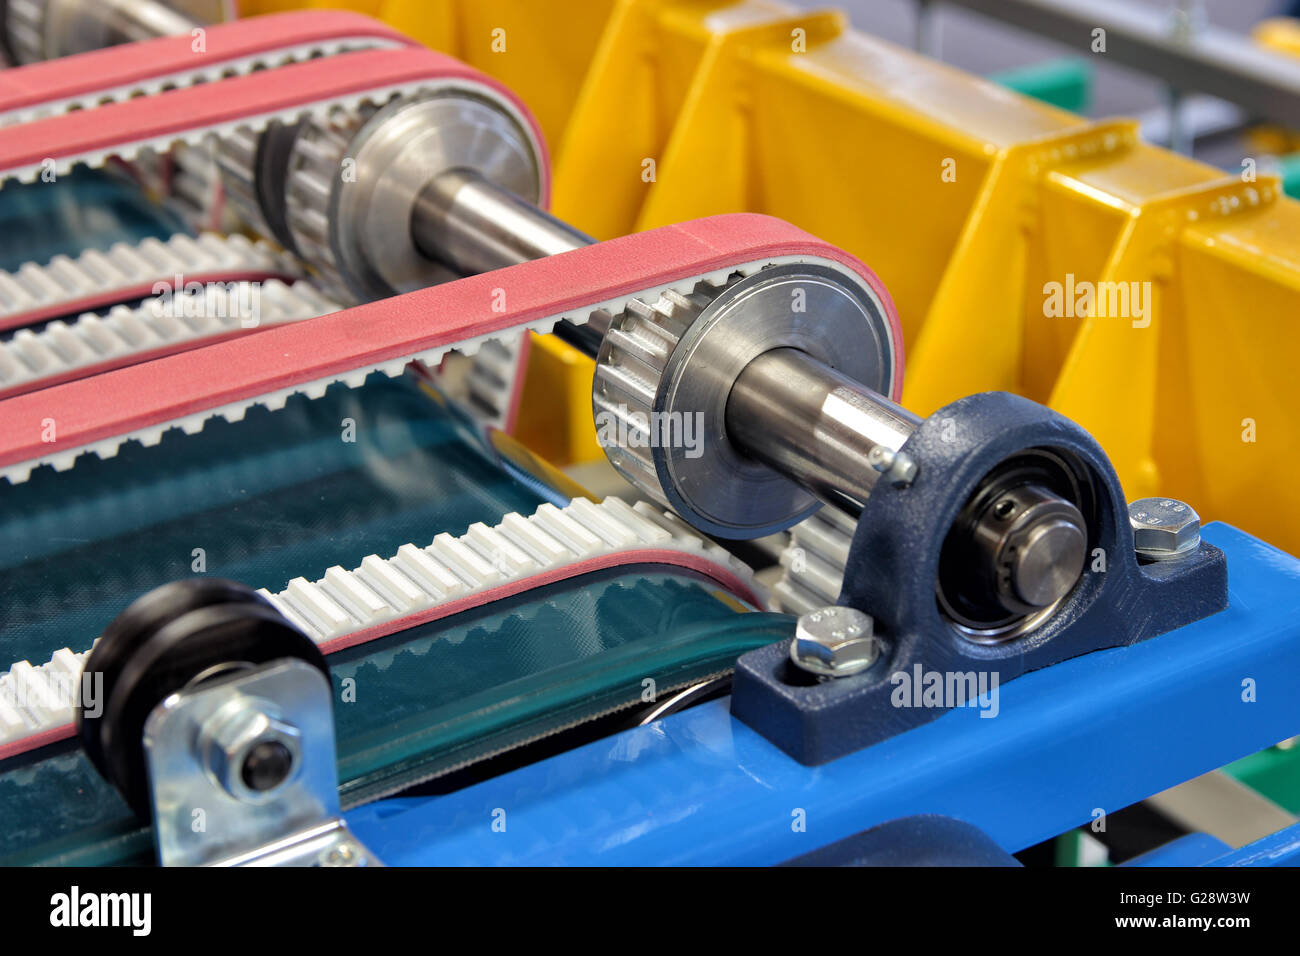 Detail of an equipment fitted with belts and pulleys - Stock Image